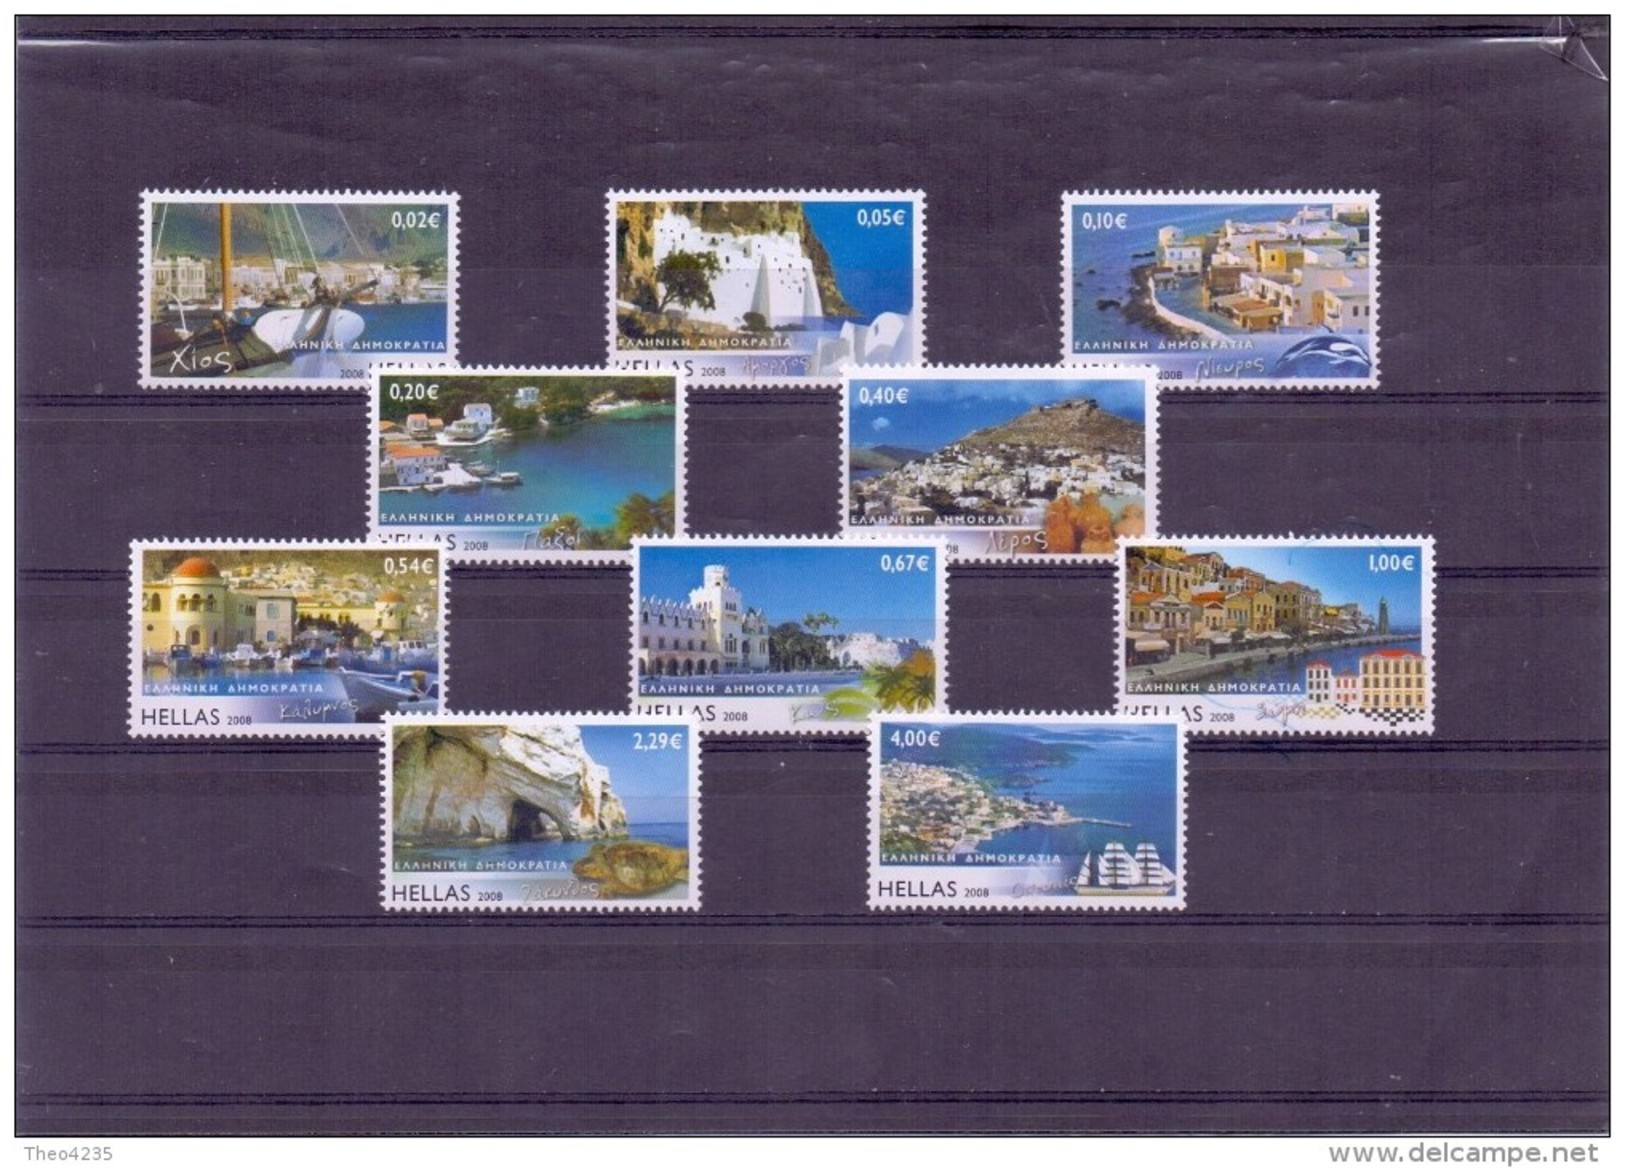 GREECE STAMPS GREEK ISLANDS III(PERFORATED ALL AROUND)-27/2/08-MNH-COMP LETE SET - Grèce